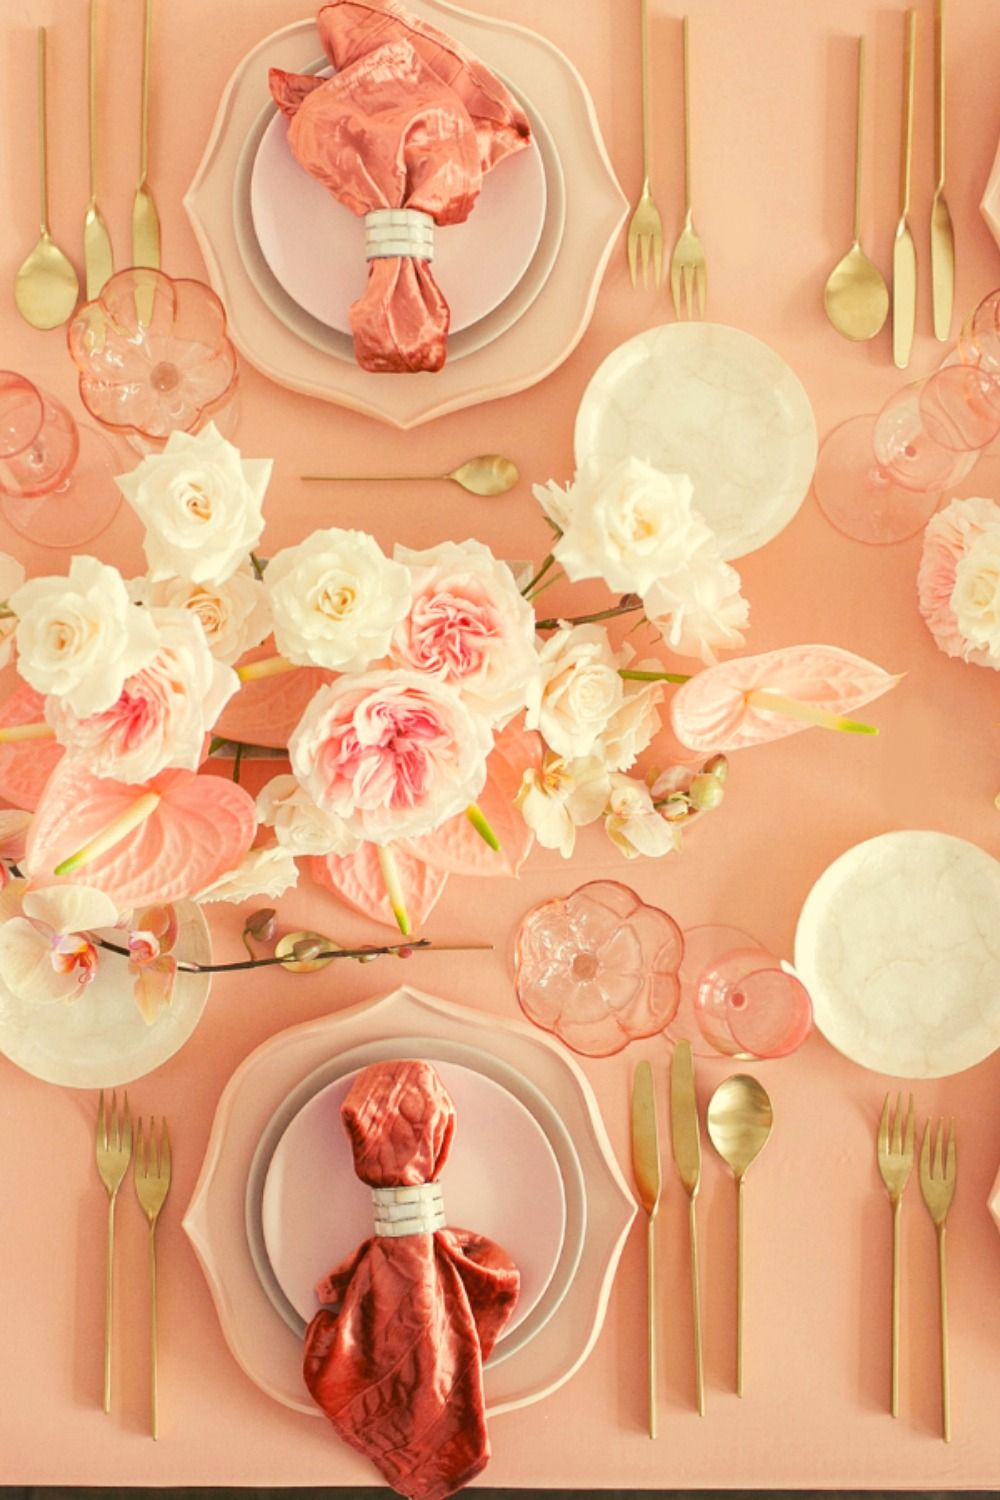 Love This Table Setting For A Dinner Party Using Blush As The Main Color White For Accent Decor And Gold Silverw Table Decorations Blush And Gold Accent Decor